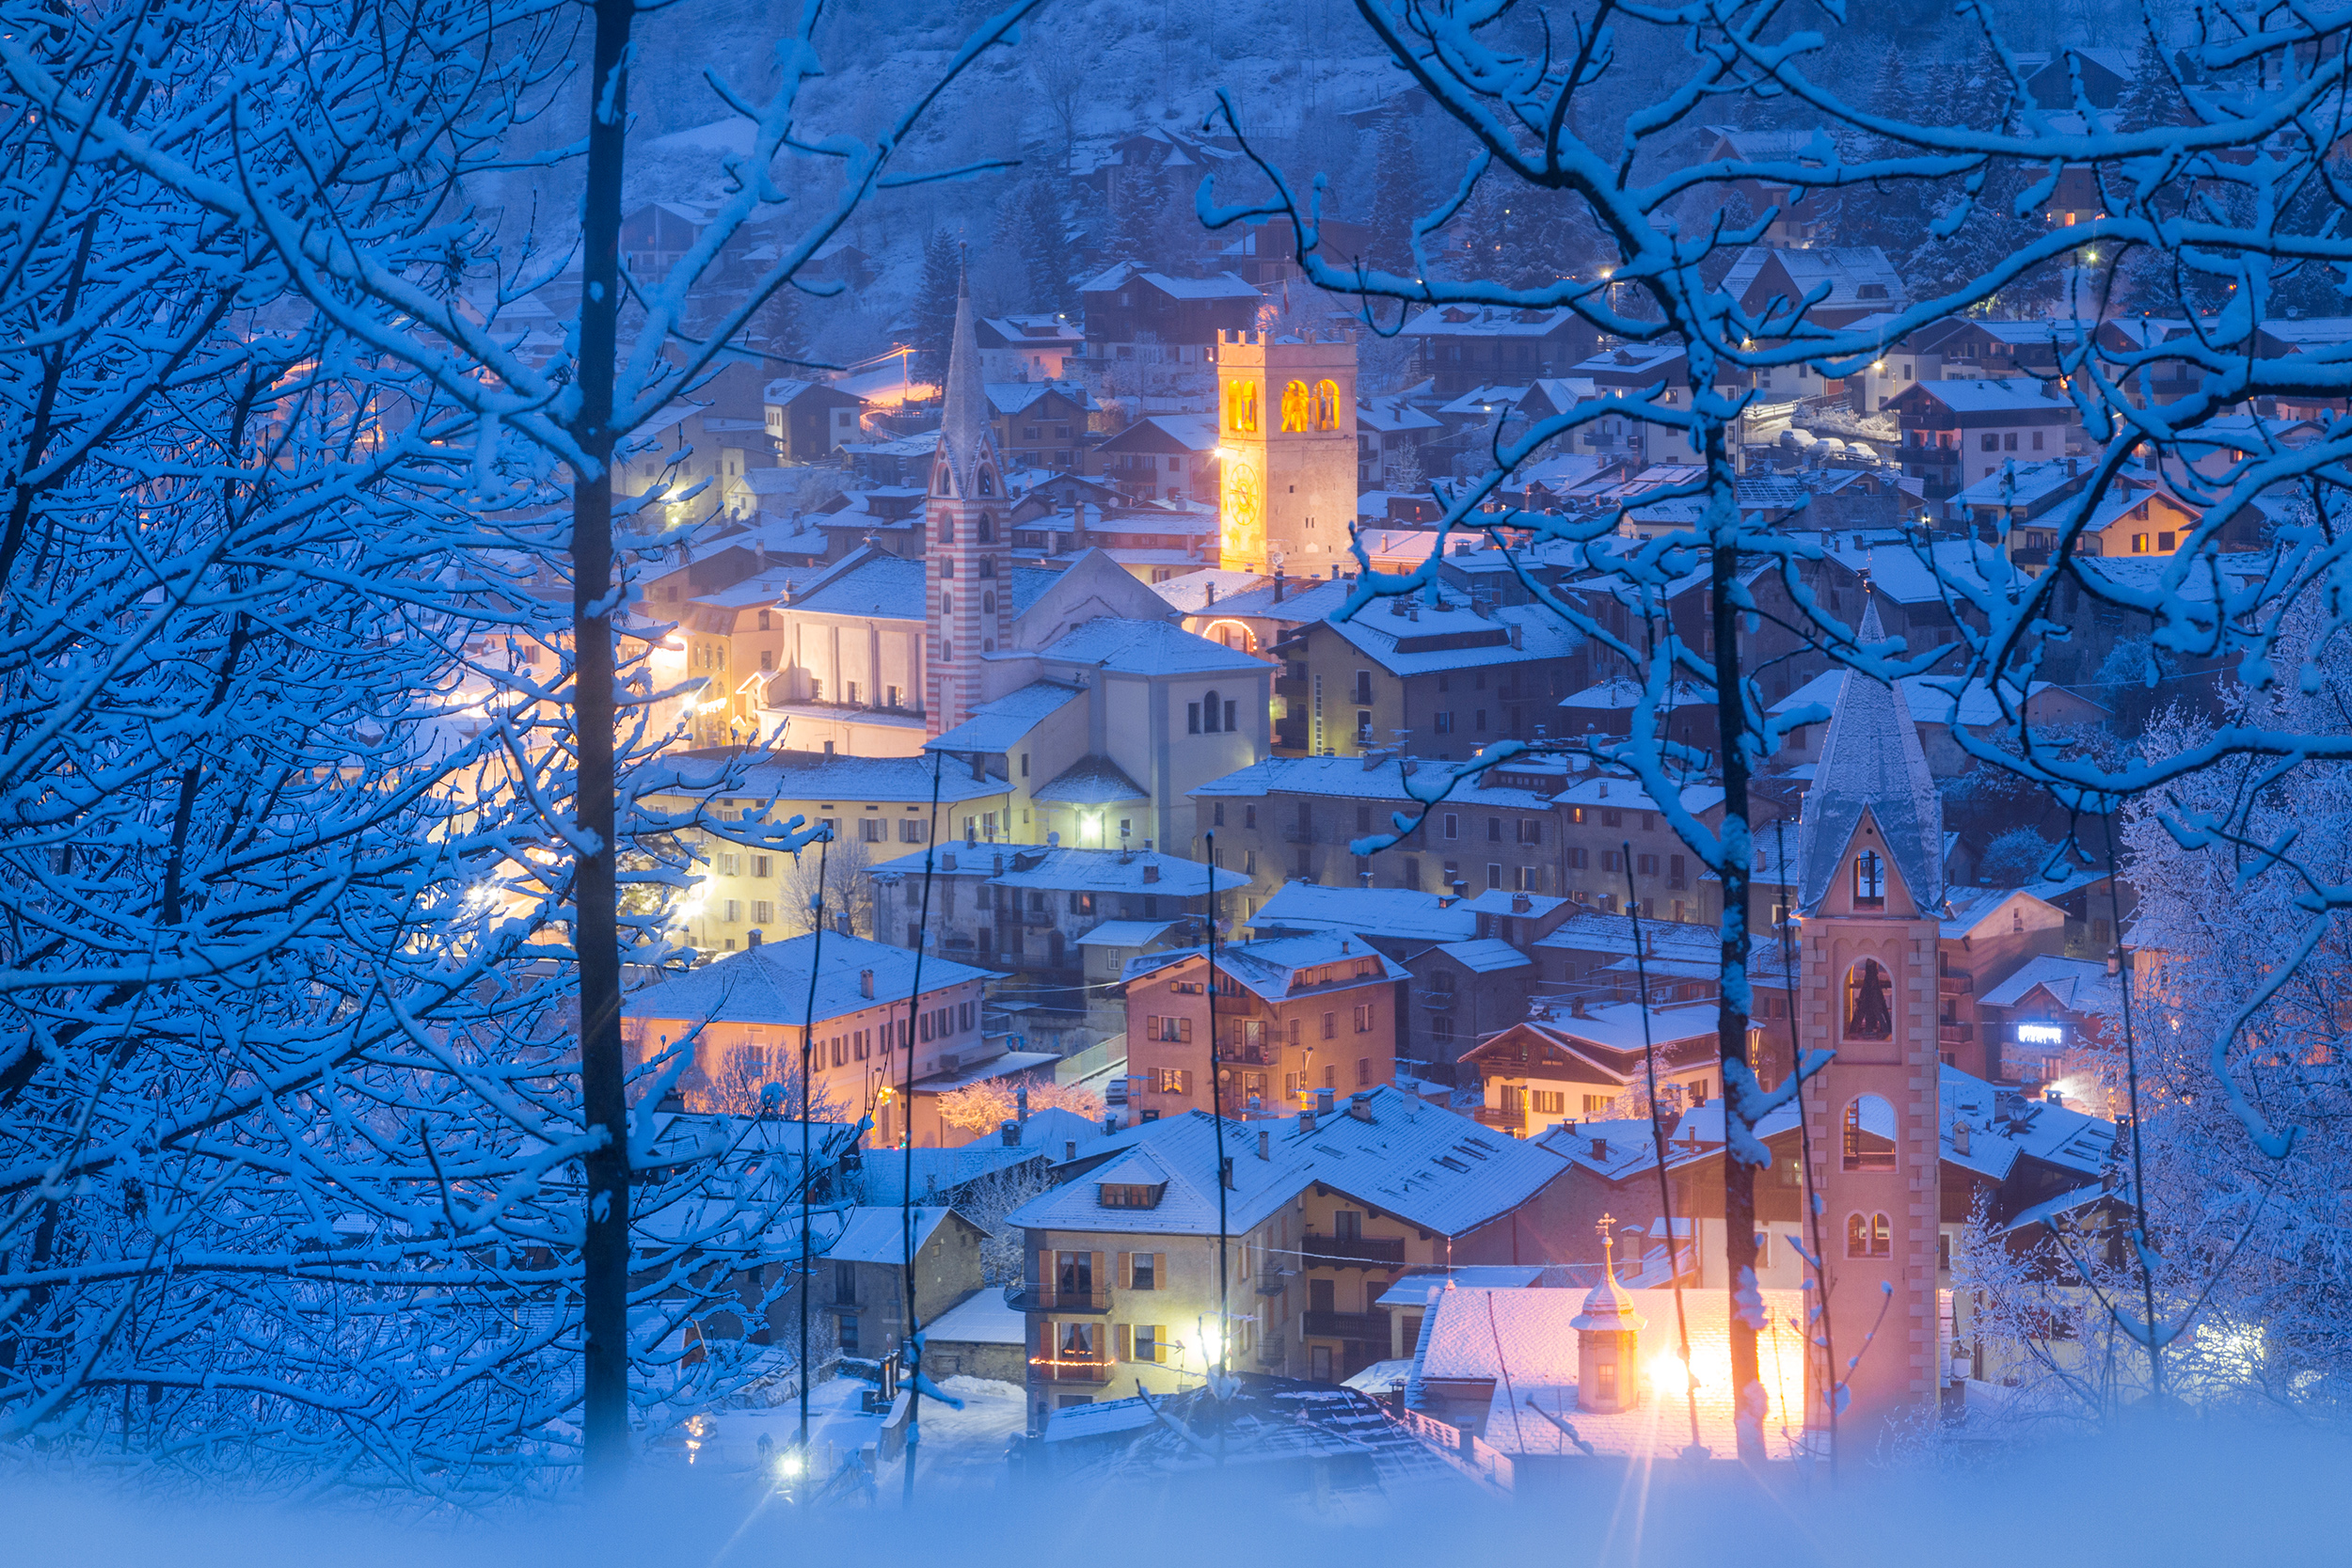 A glimpse of the town of Sondalo in Alta Valtellina immediately after a snowfall